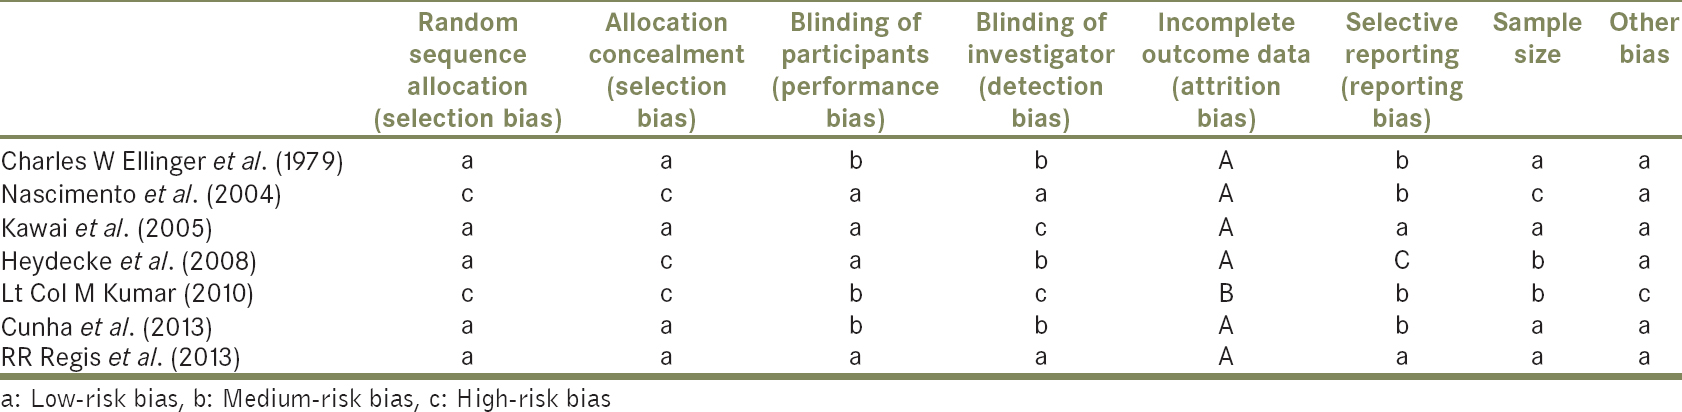 Figure 2: Assessing the risk of bias in the studies at various stages of the review